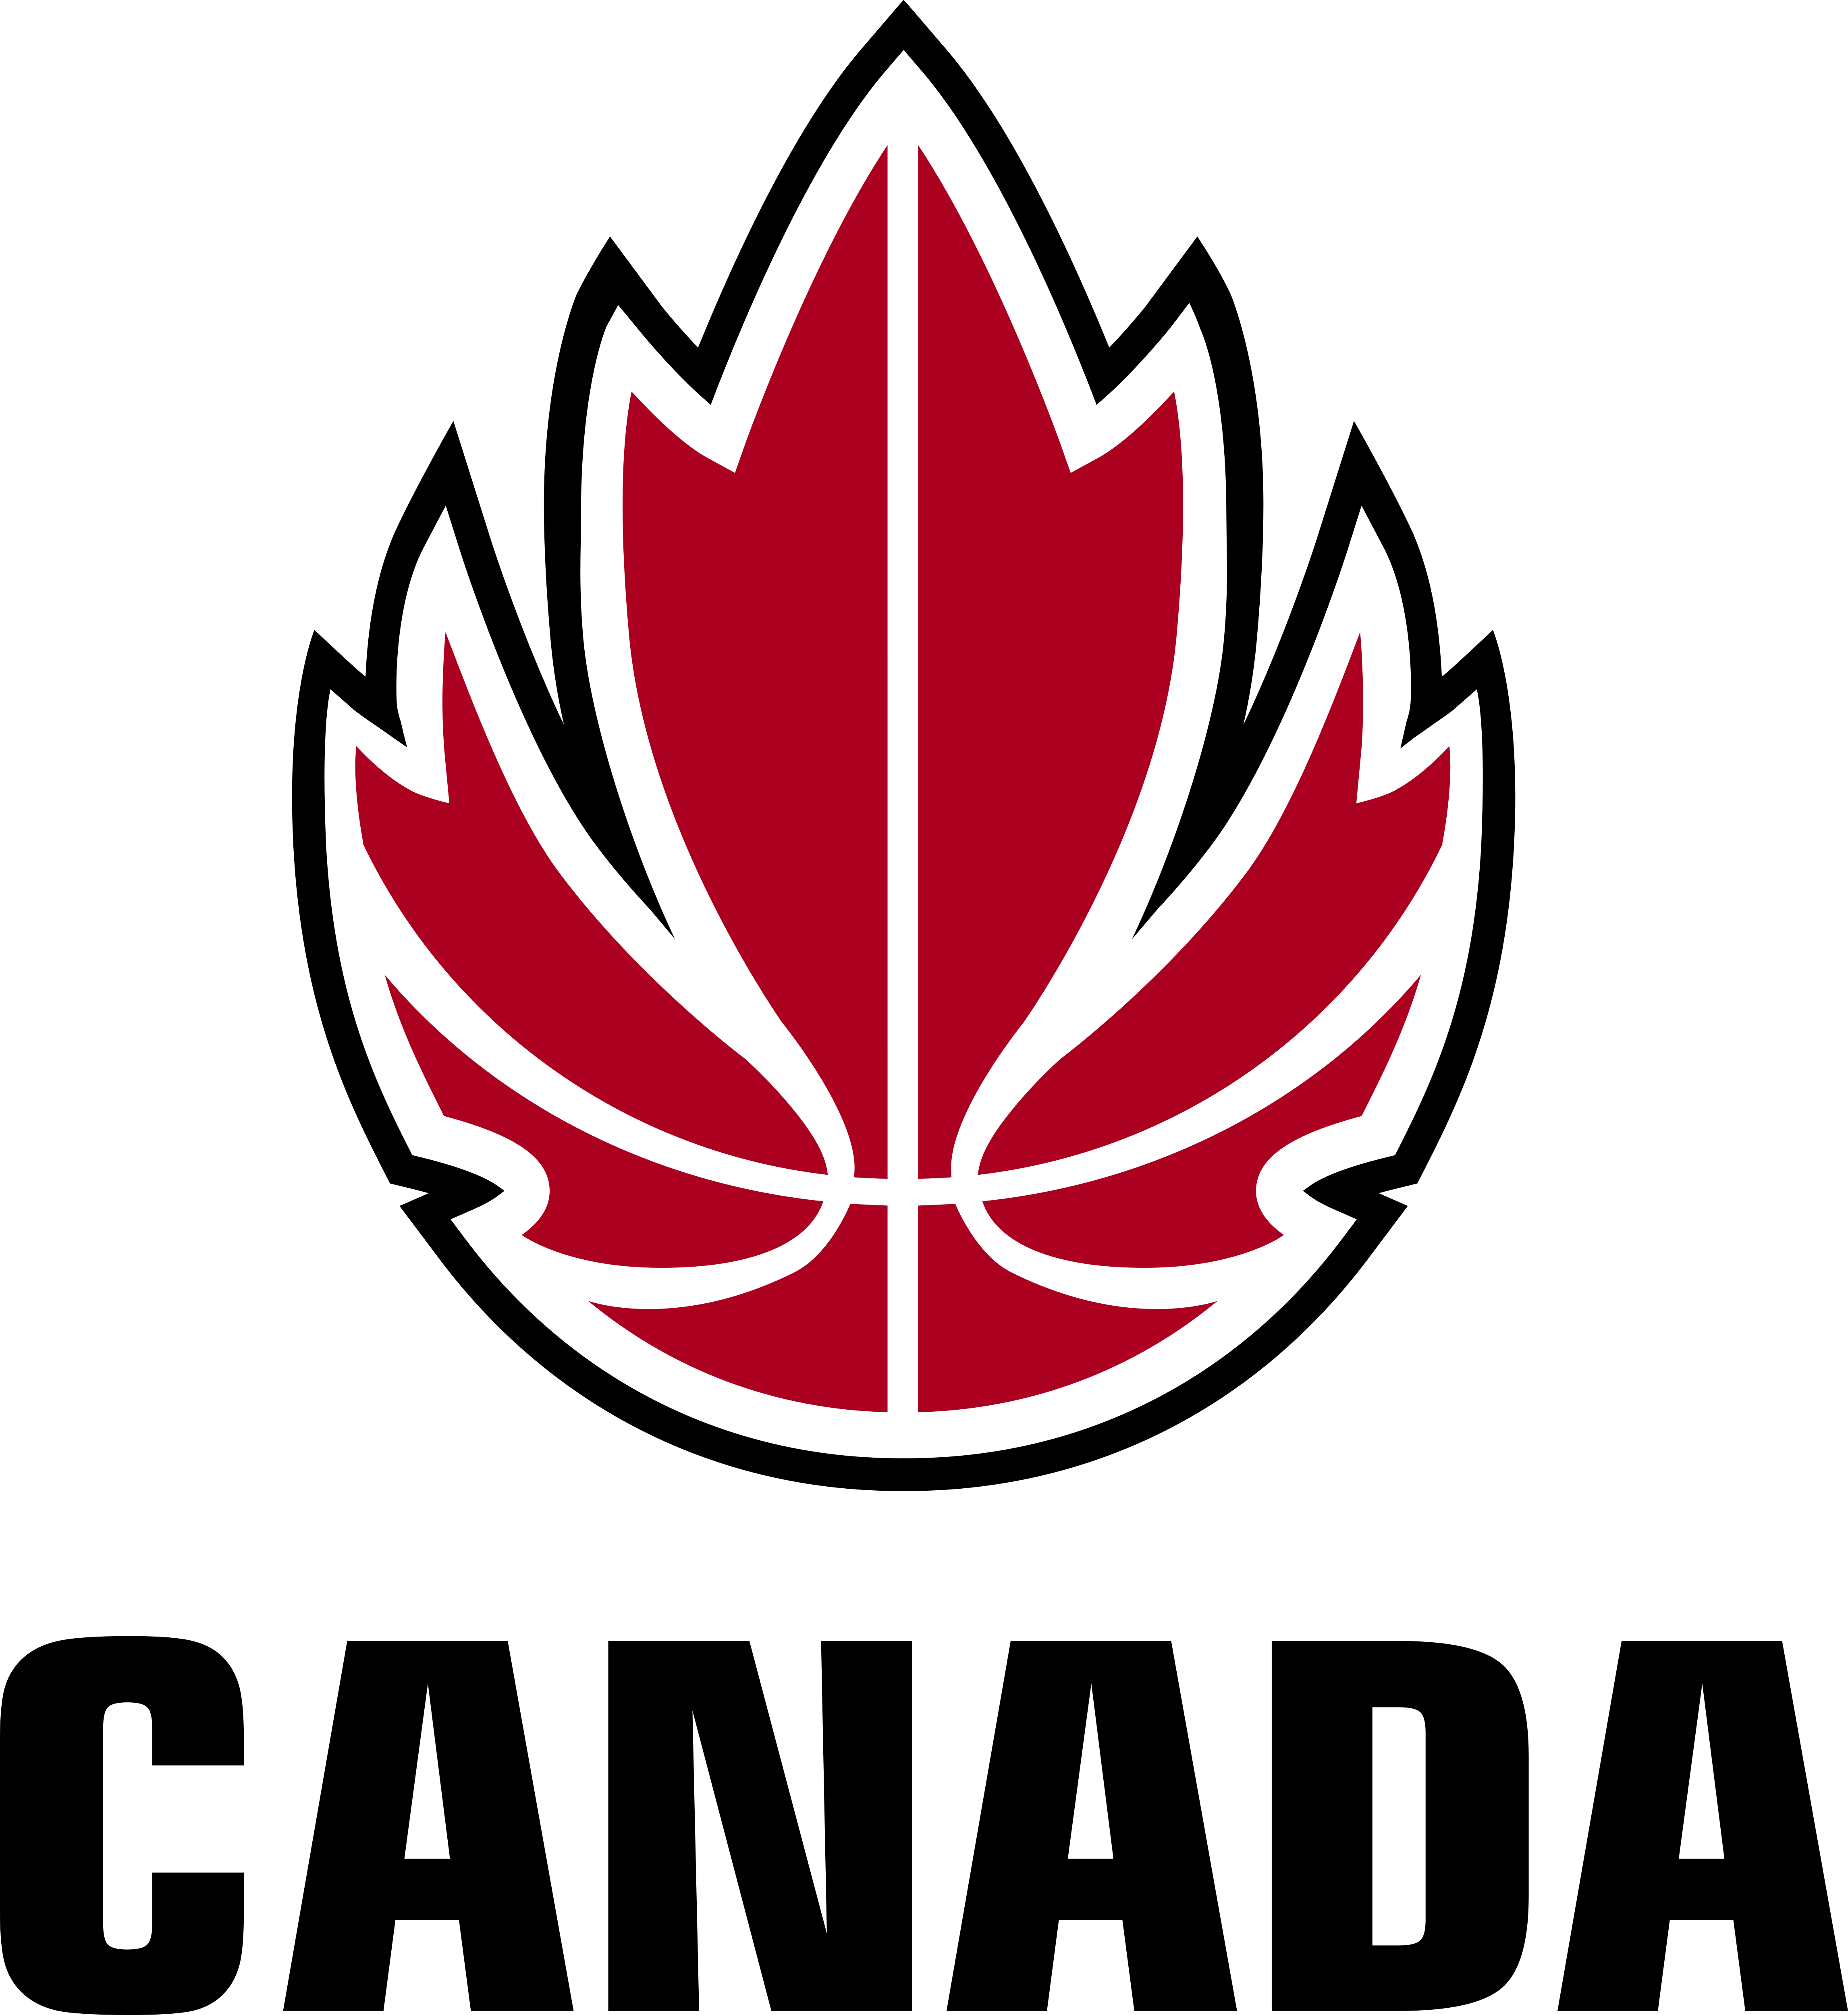 freeuse download Canada logos download. Vector emblem basketball